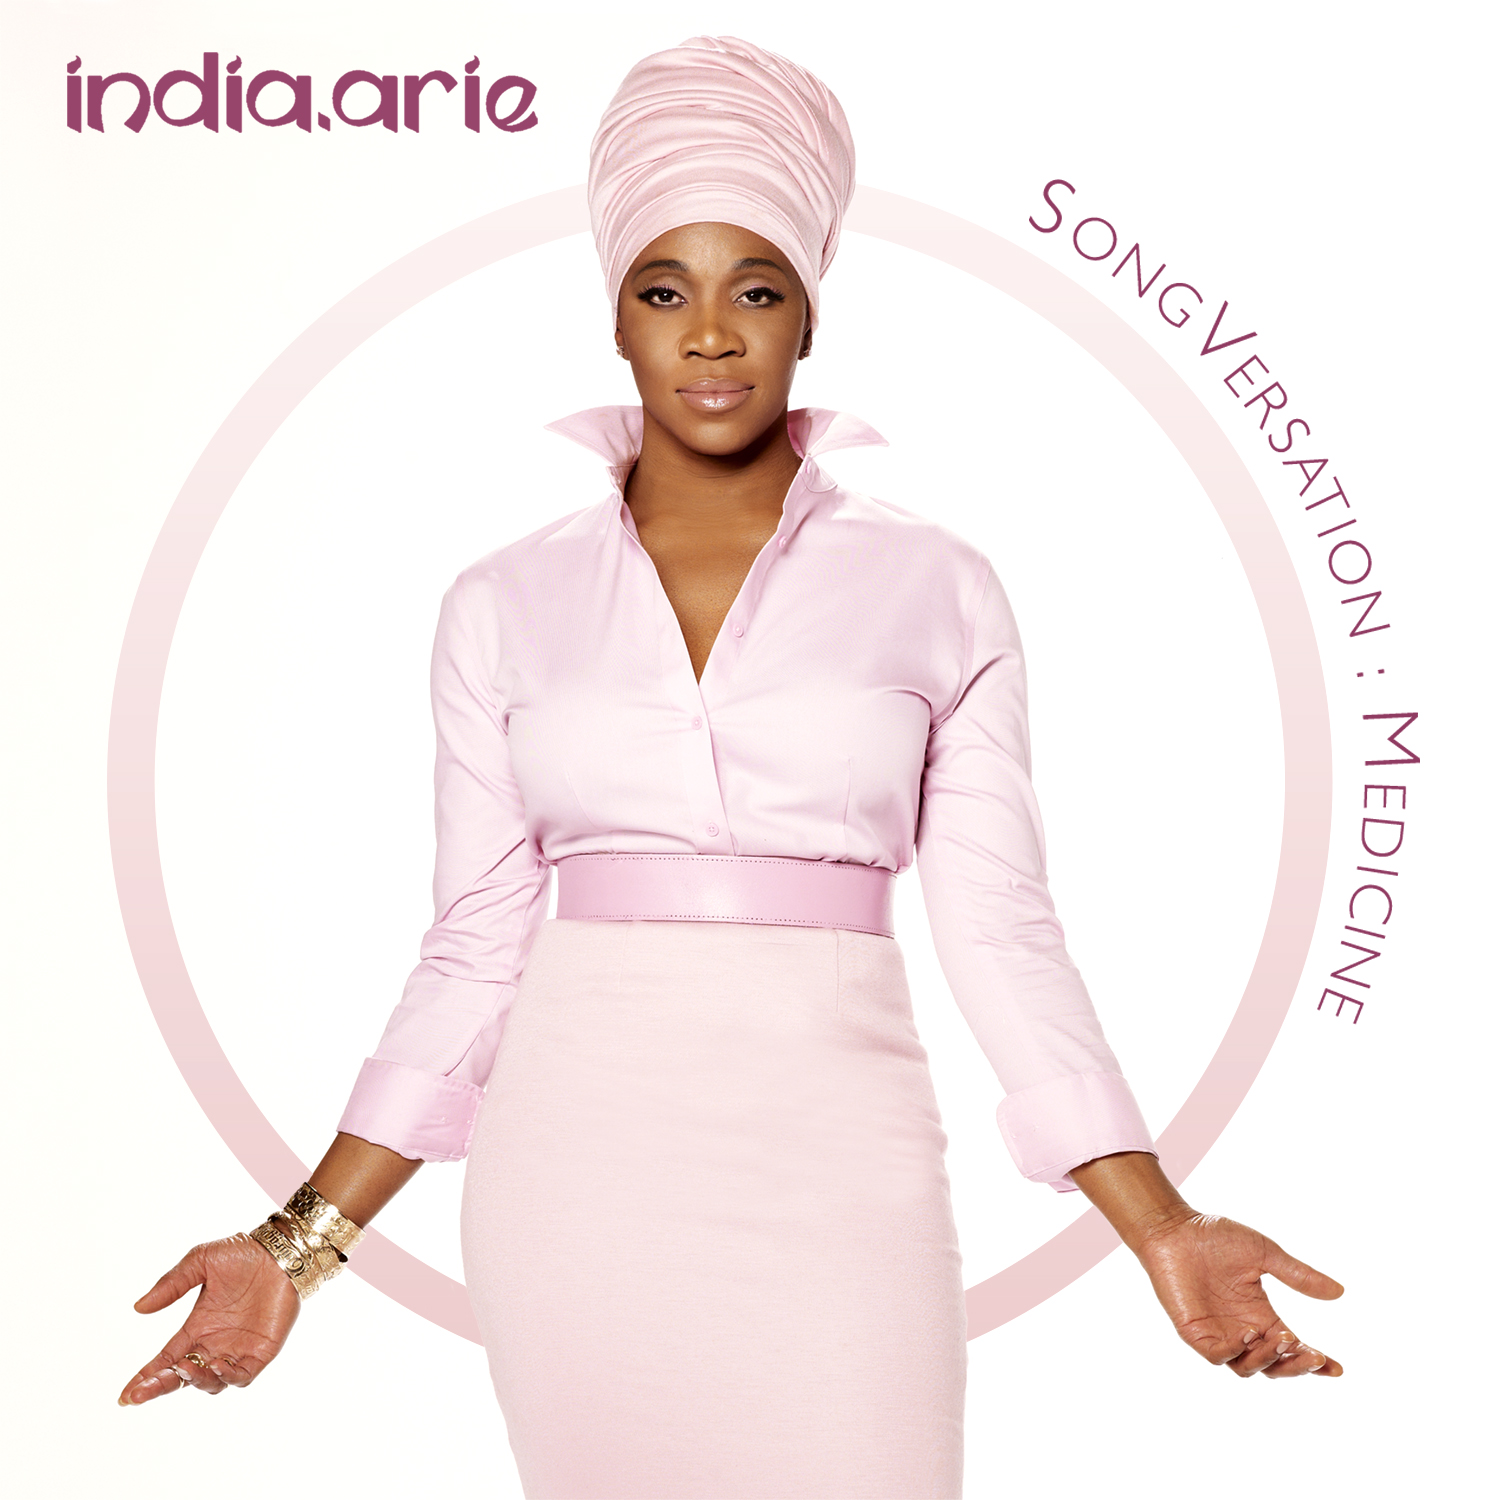 India Arie Songversation Medicine EP